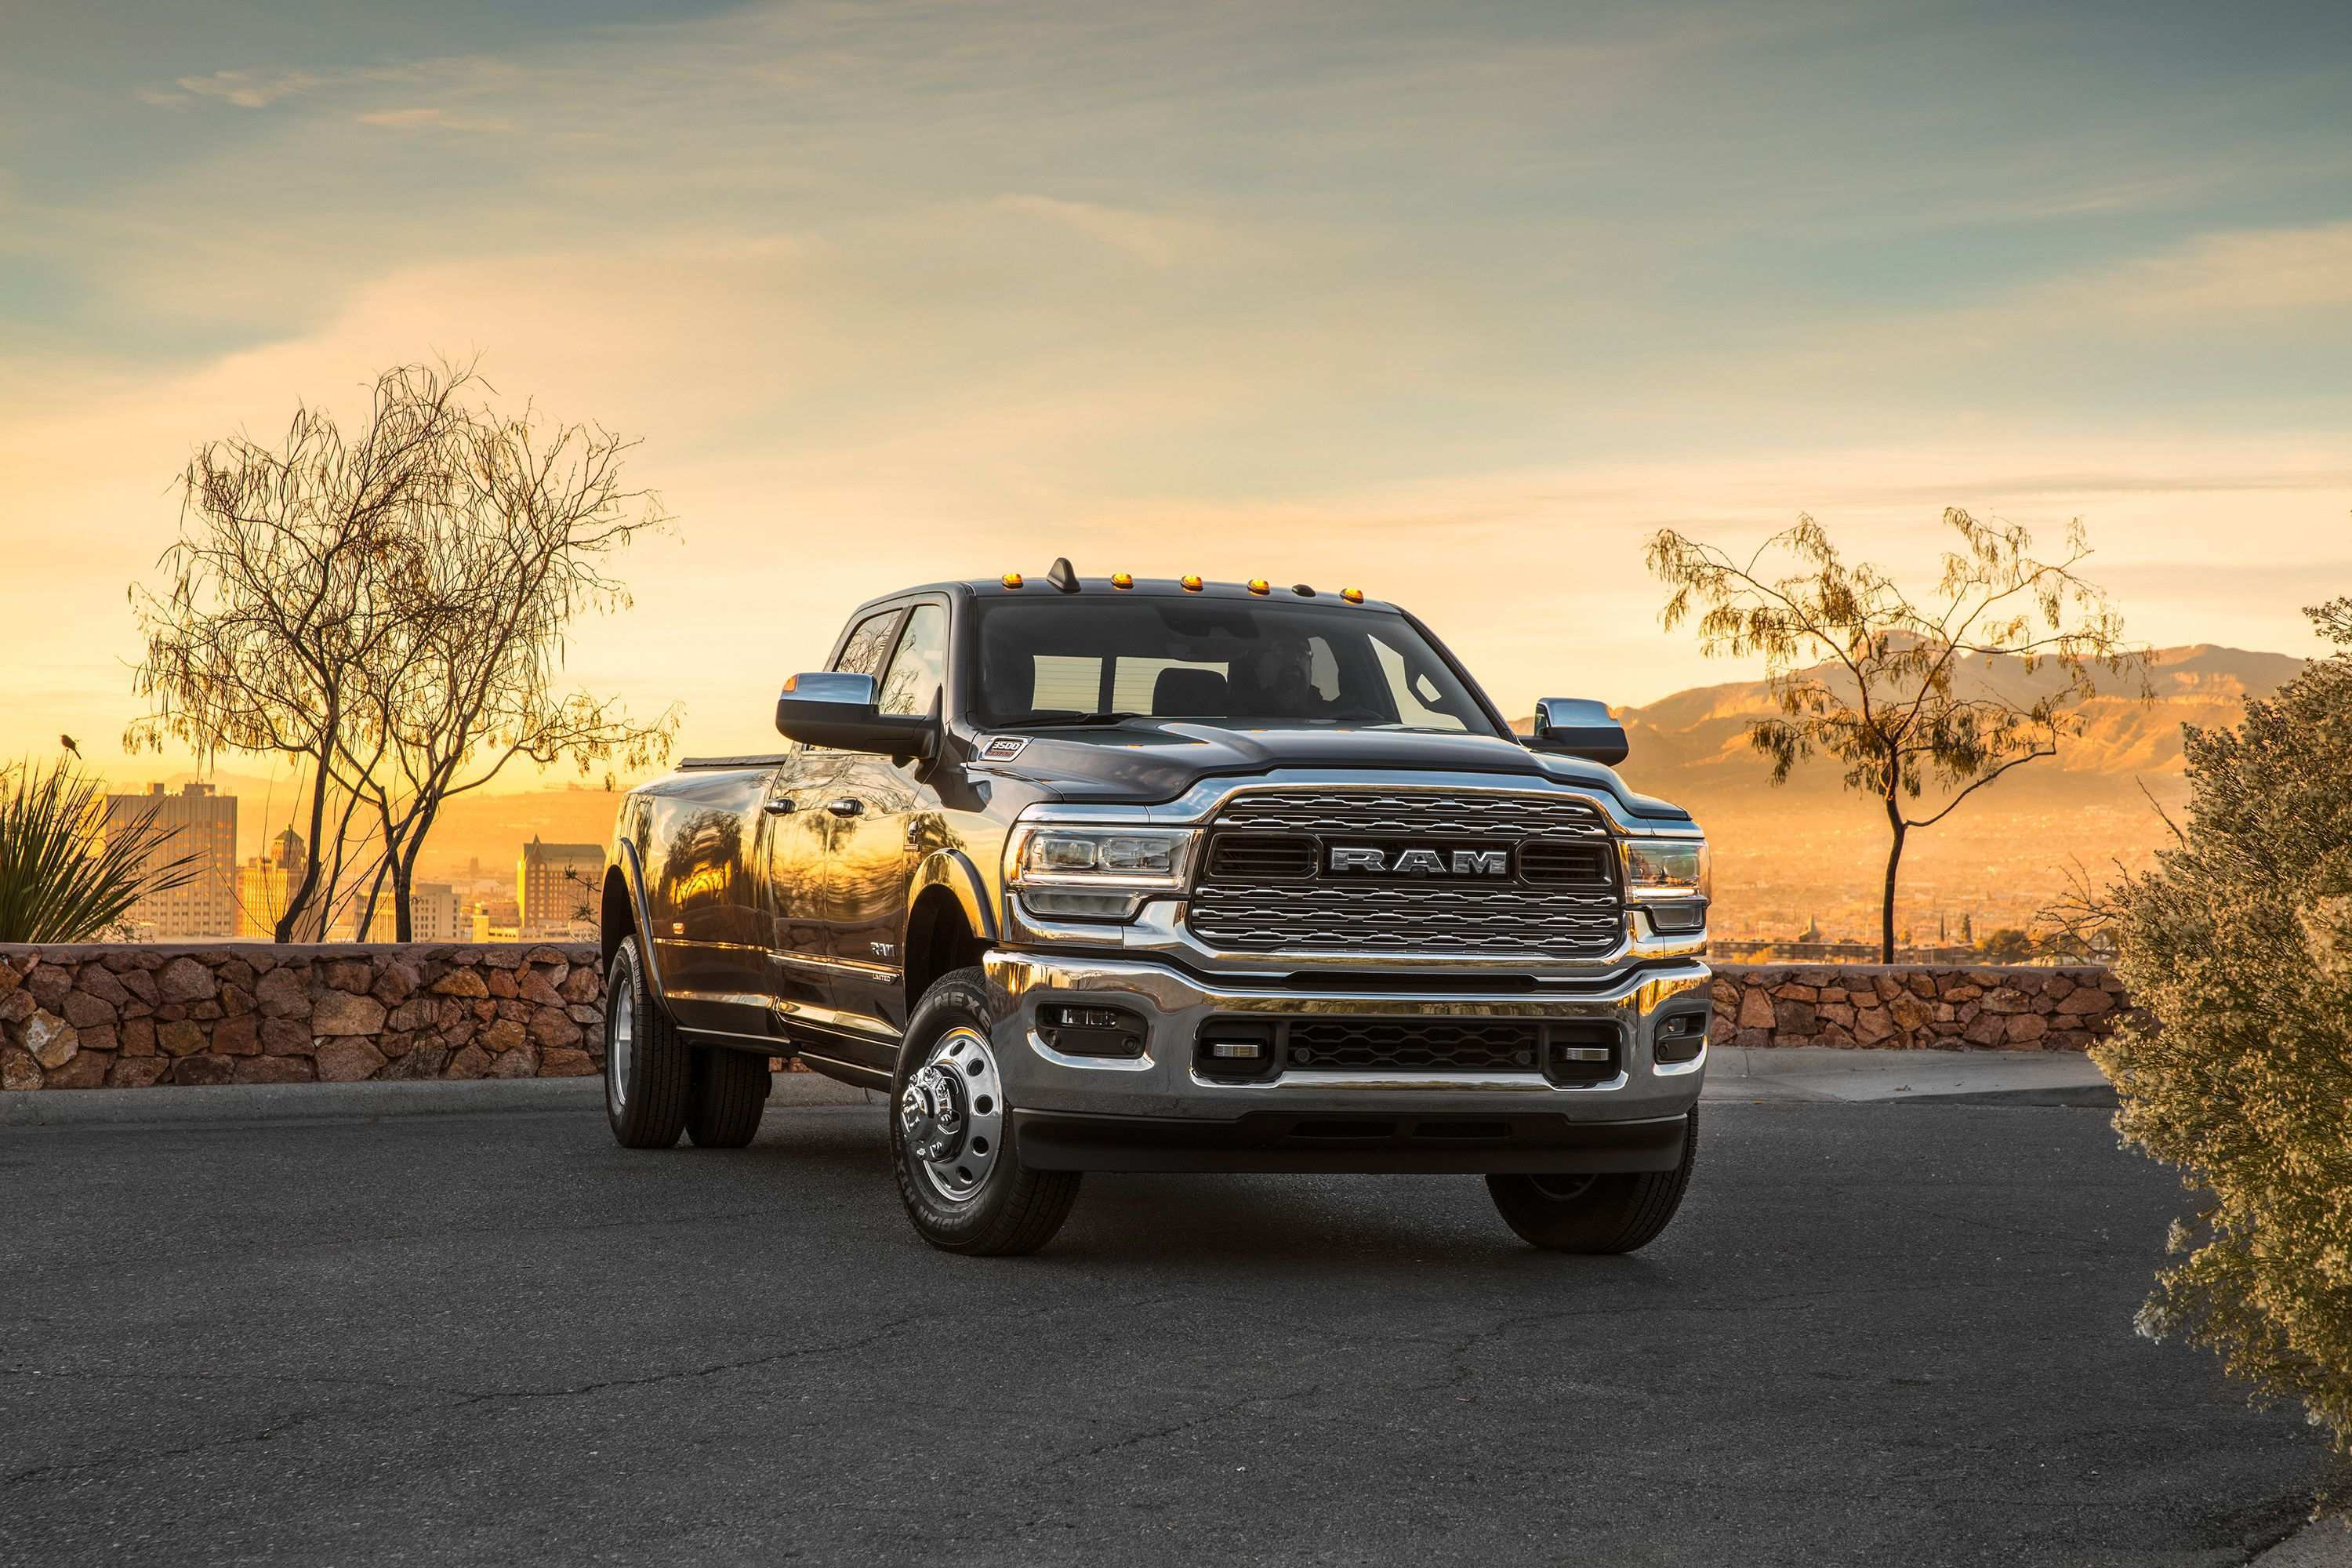 67 Best Review 2020 Ram 3500 Review for 2020 Ram 3500